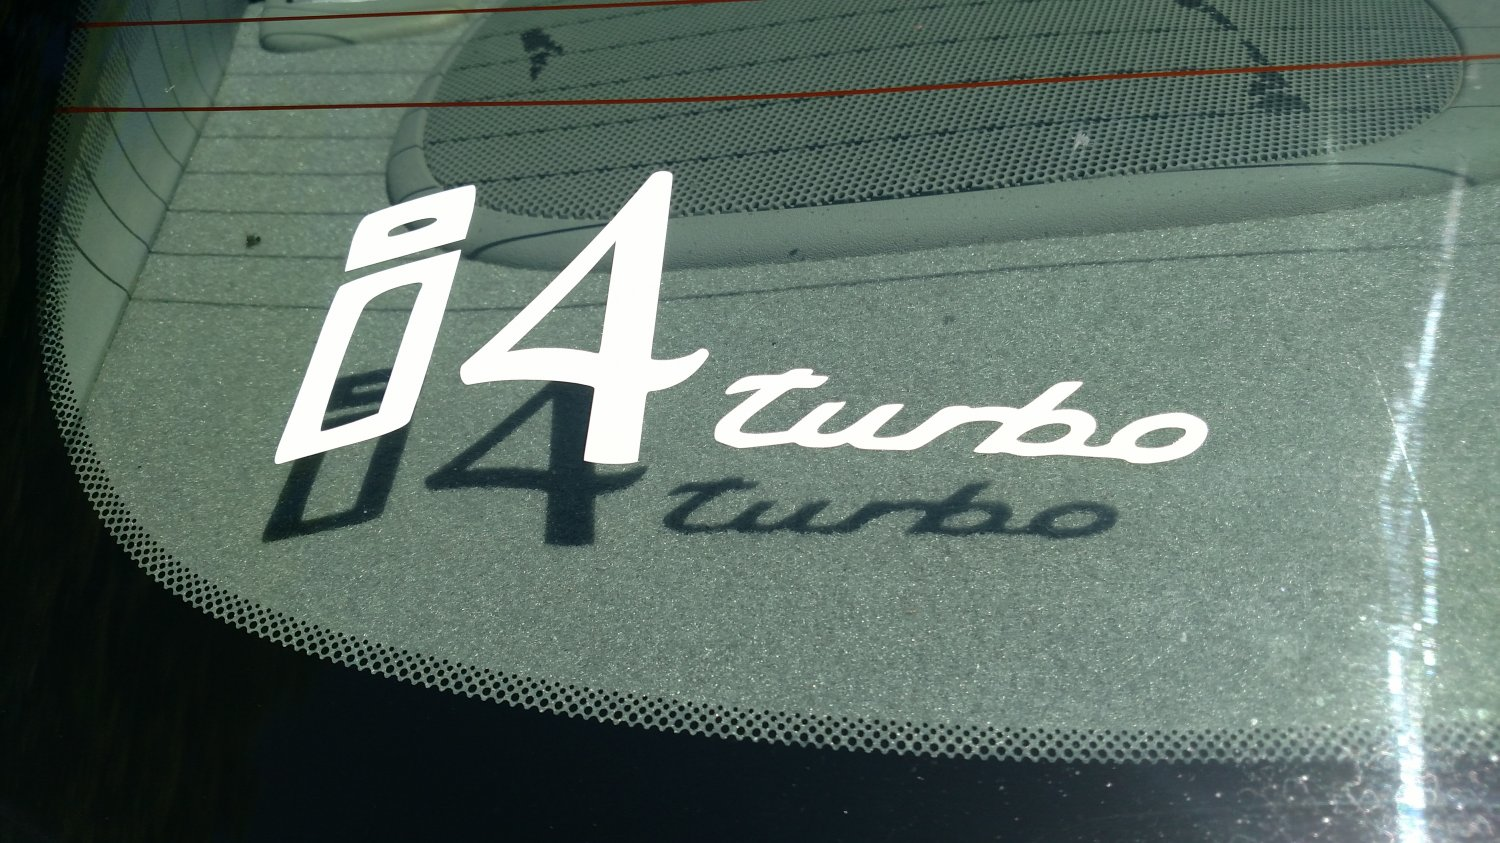 i4 Inline Four Turbo Vinyl Car Window Bumper Sticker Decal Laptop Turbocharger Turbocharged 4